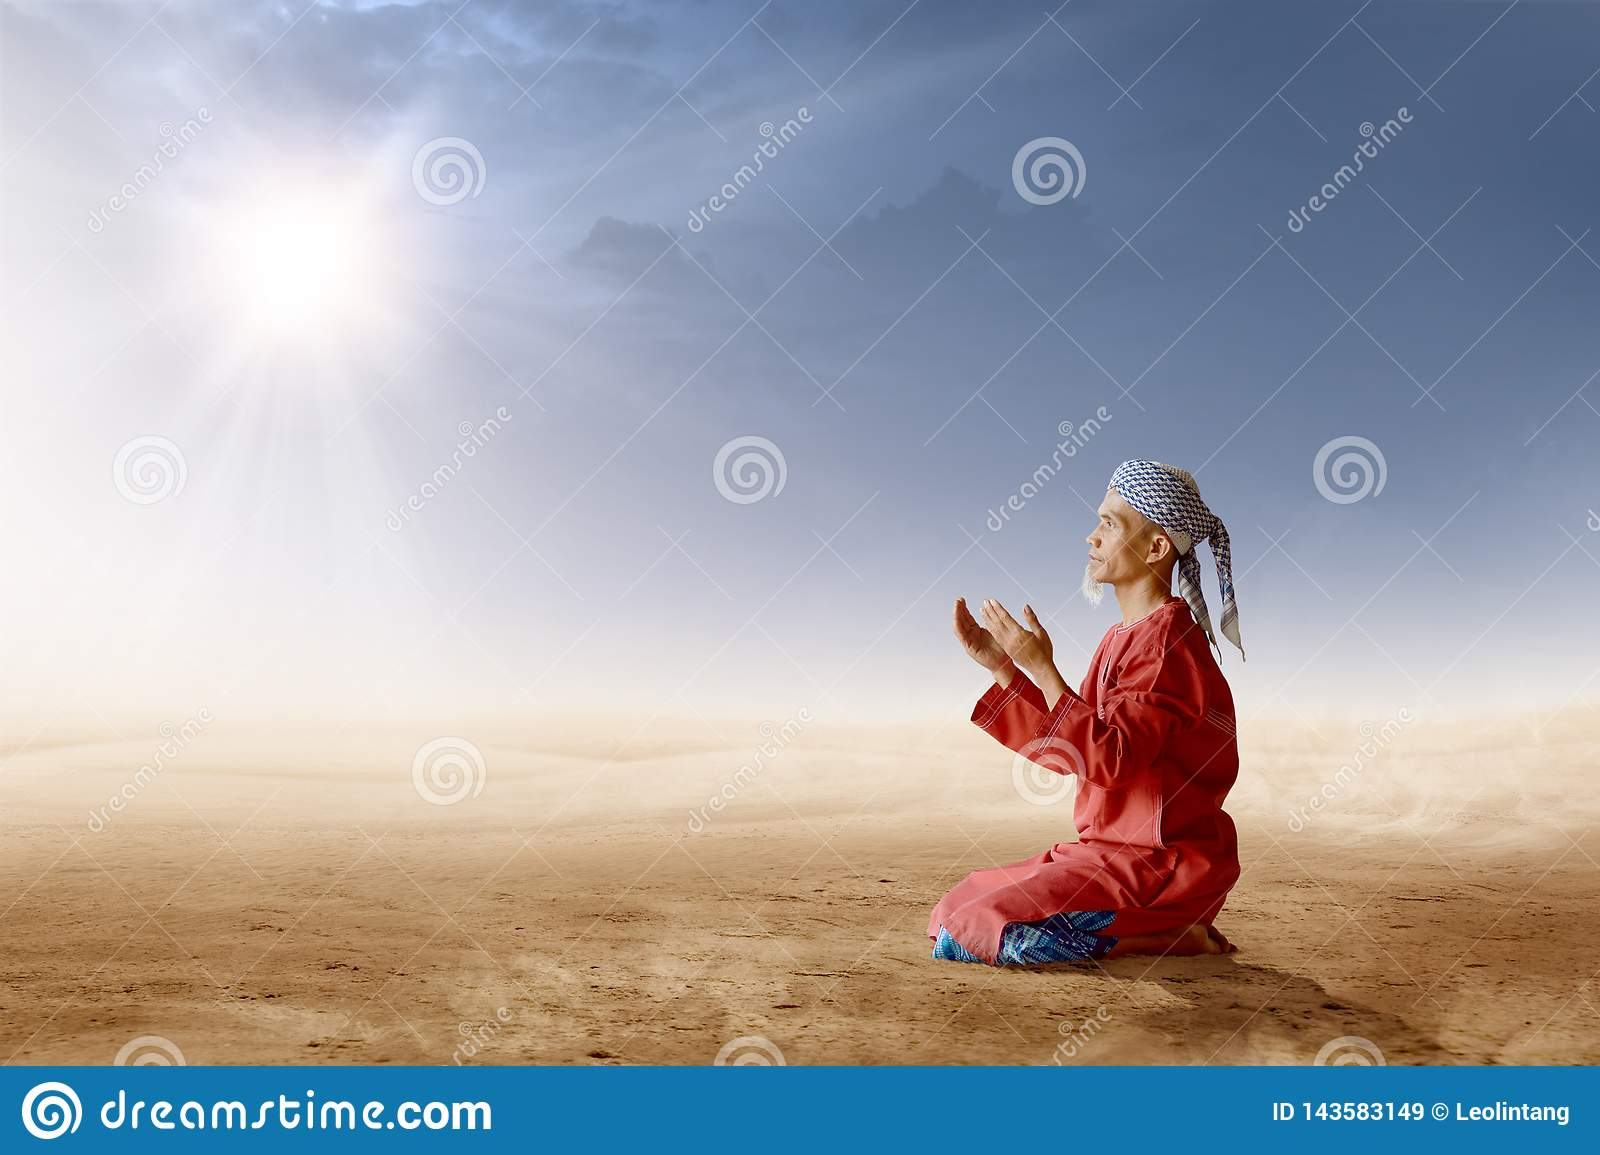 Asian muslim man with turban in his head kneeling and praying with raised hands on desert